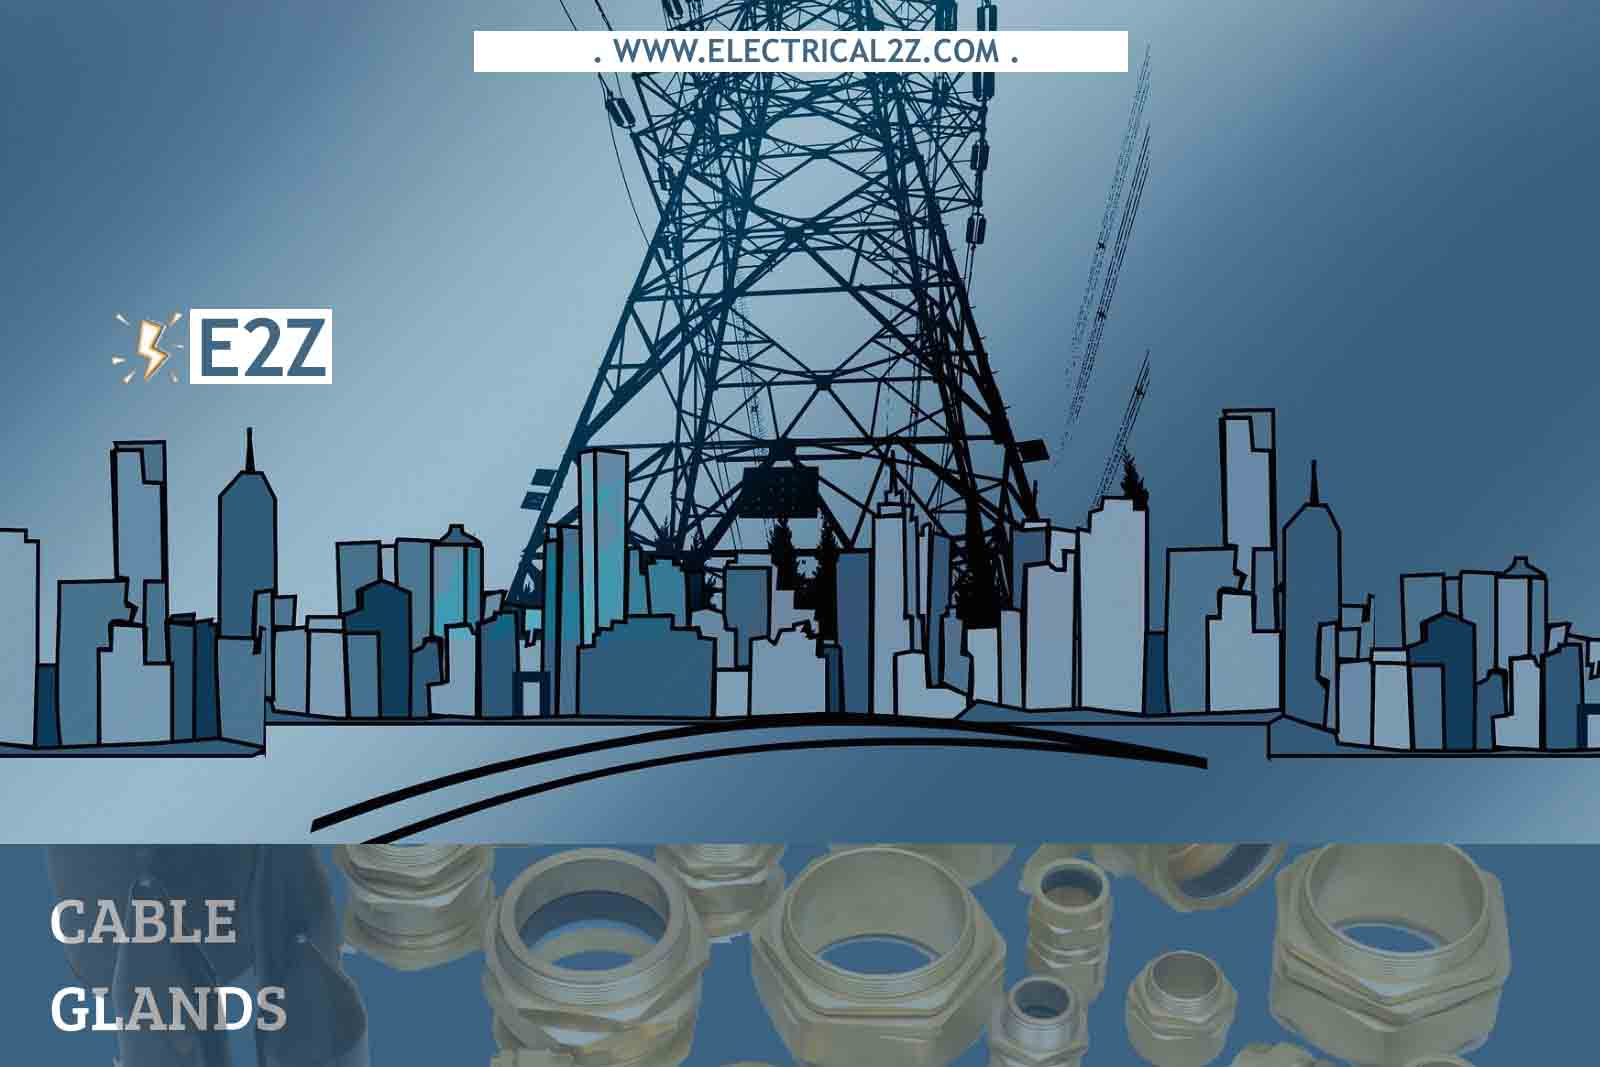 What is a Cable Gland? 6 Types of Cable Glands - Electrical 2Z